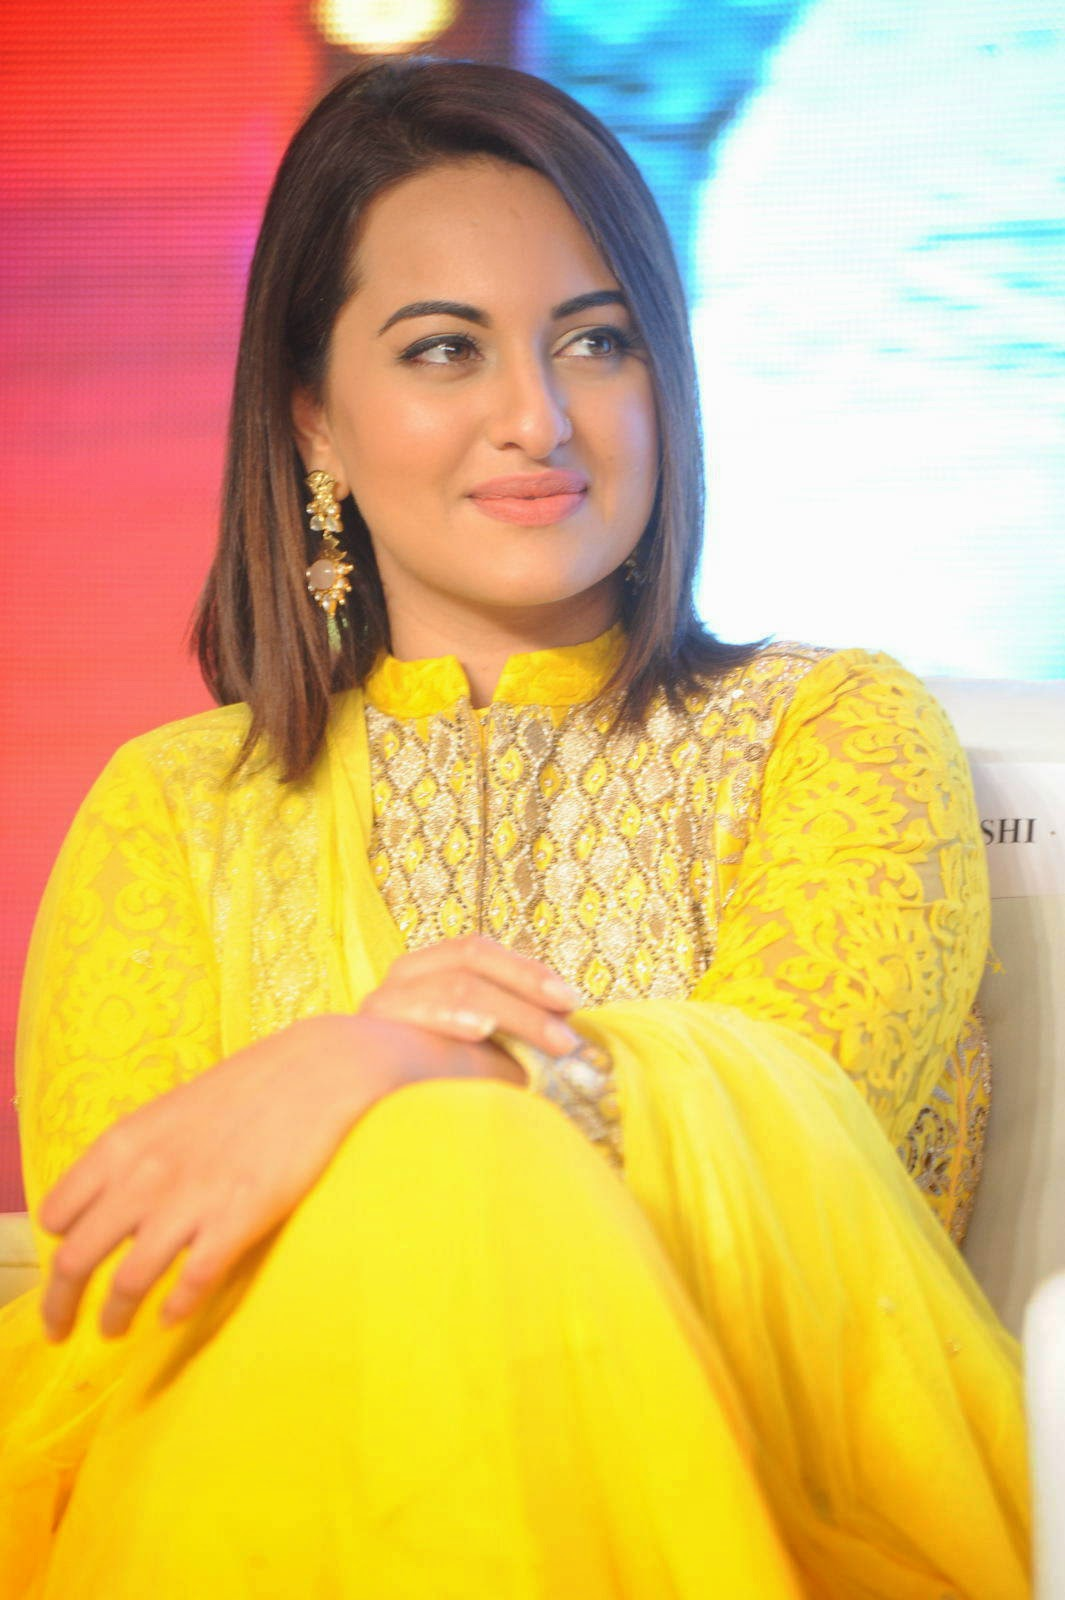 Sonakshi Sinha Stills, Sonakshi Sinha Yellow Suit Pics from Lingaa Movie Event